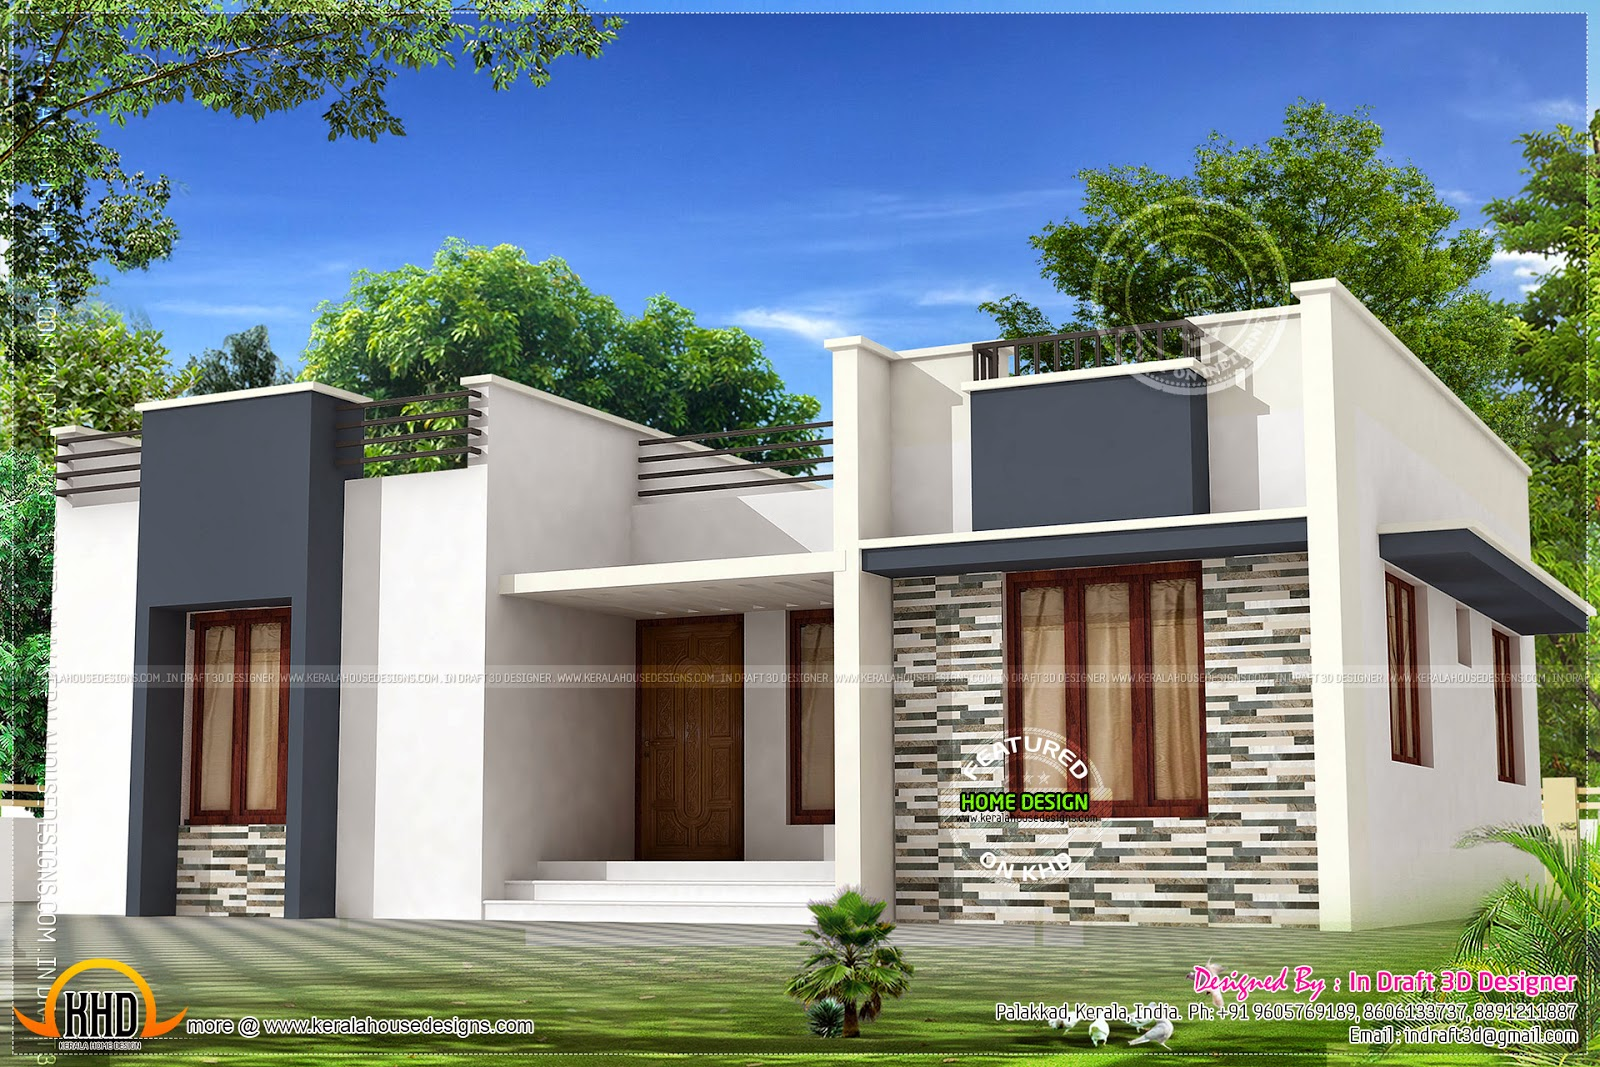 Design Of Farmhouse Medium Linoleum Bamboo House Designs In besides Apartment Interior Design Inspiration as well Beautiful House Plans In Sri Lanka besides Hanselmann House moreover 960 Sq Ft Floor Plans Html. on modern box type house design